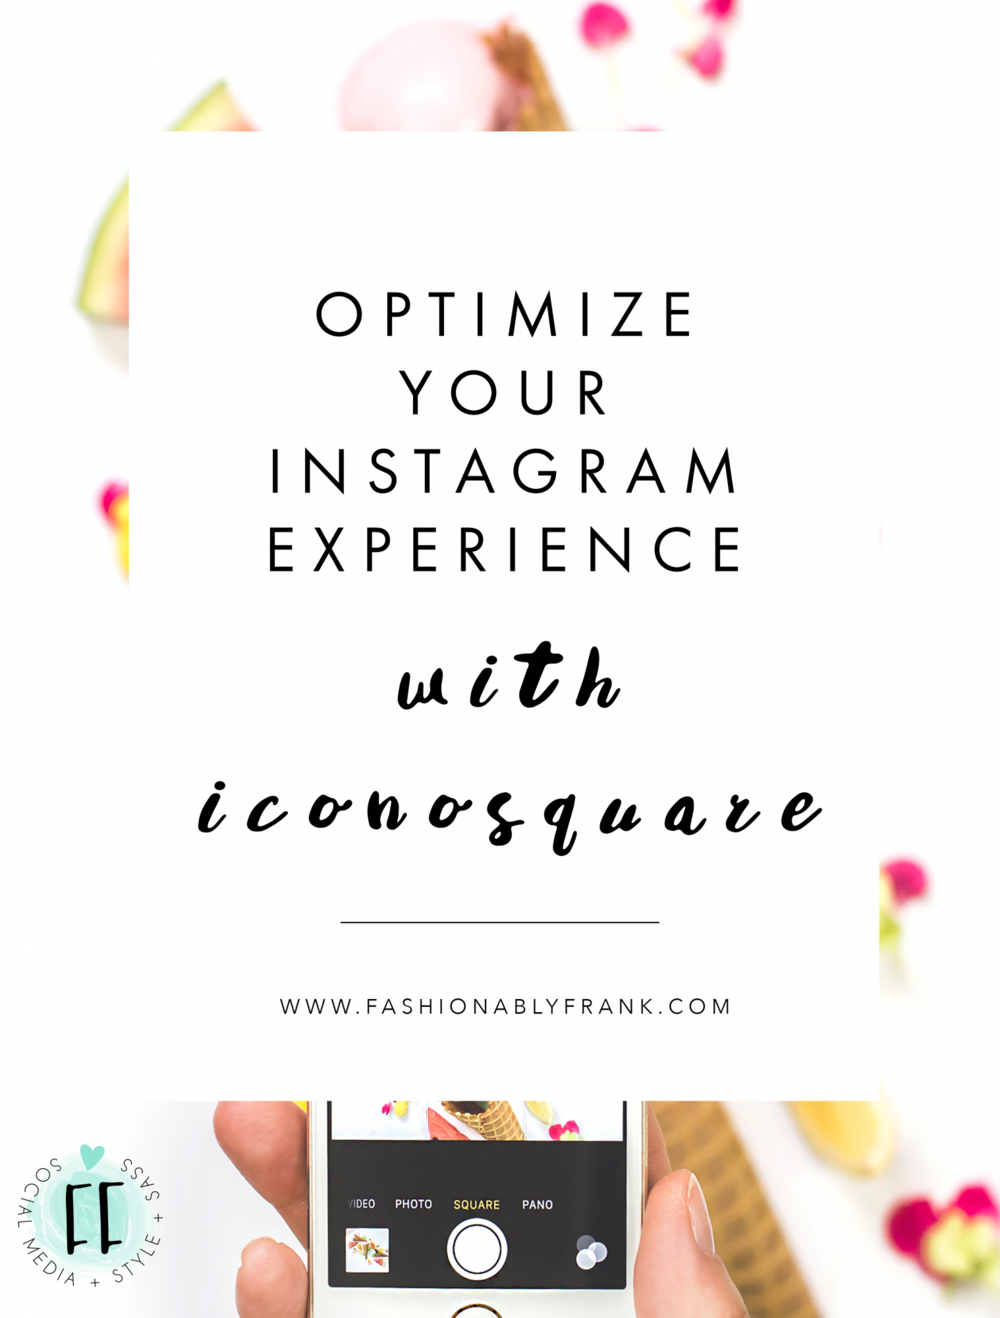 Use Iconosquare to Optimize Your Instagram Experience | Fashionably Frank